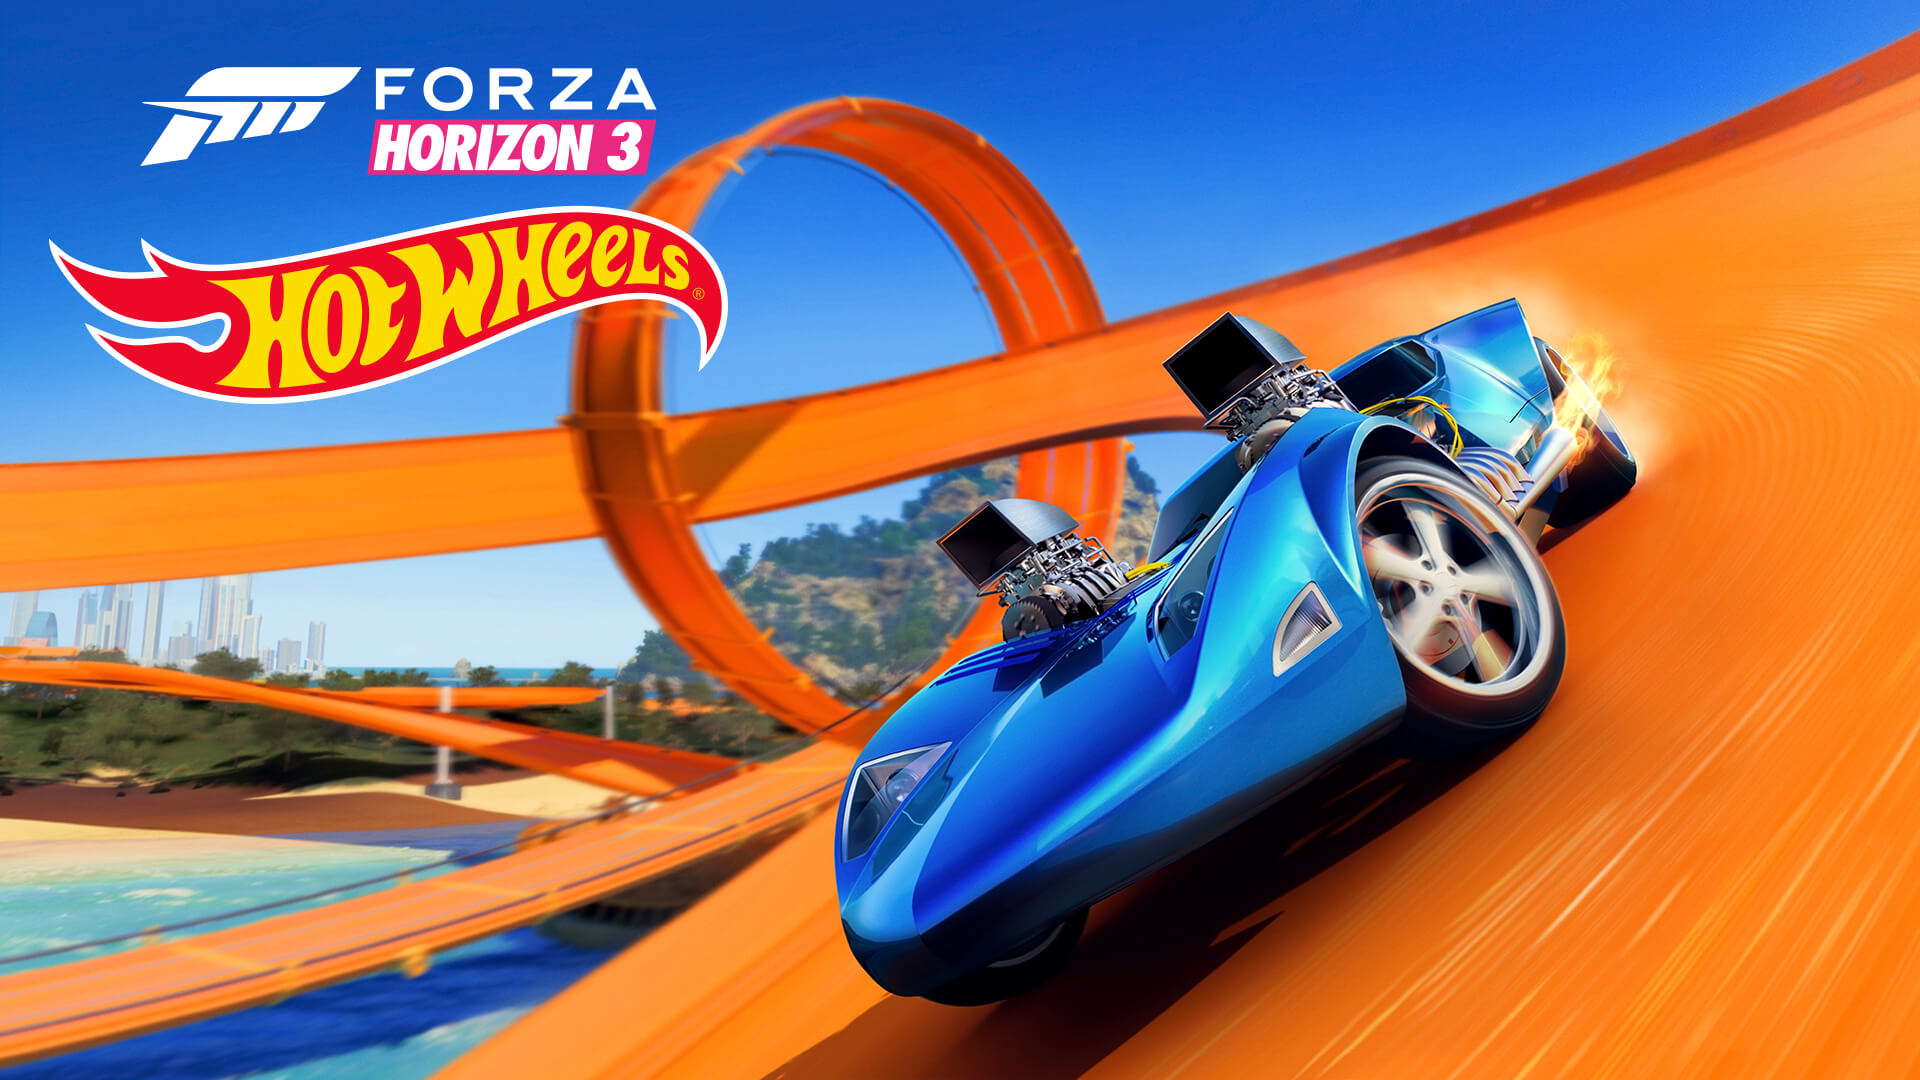 Forza Horizon 3 is Getting a Hot Wheels Expansion